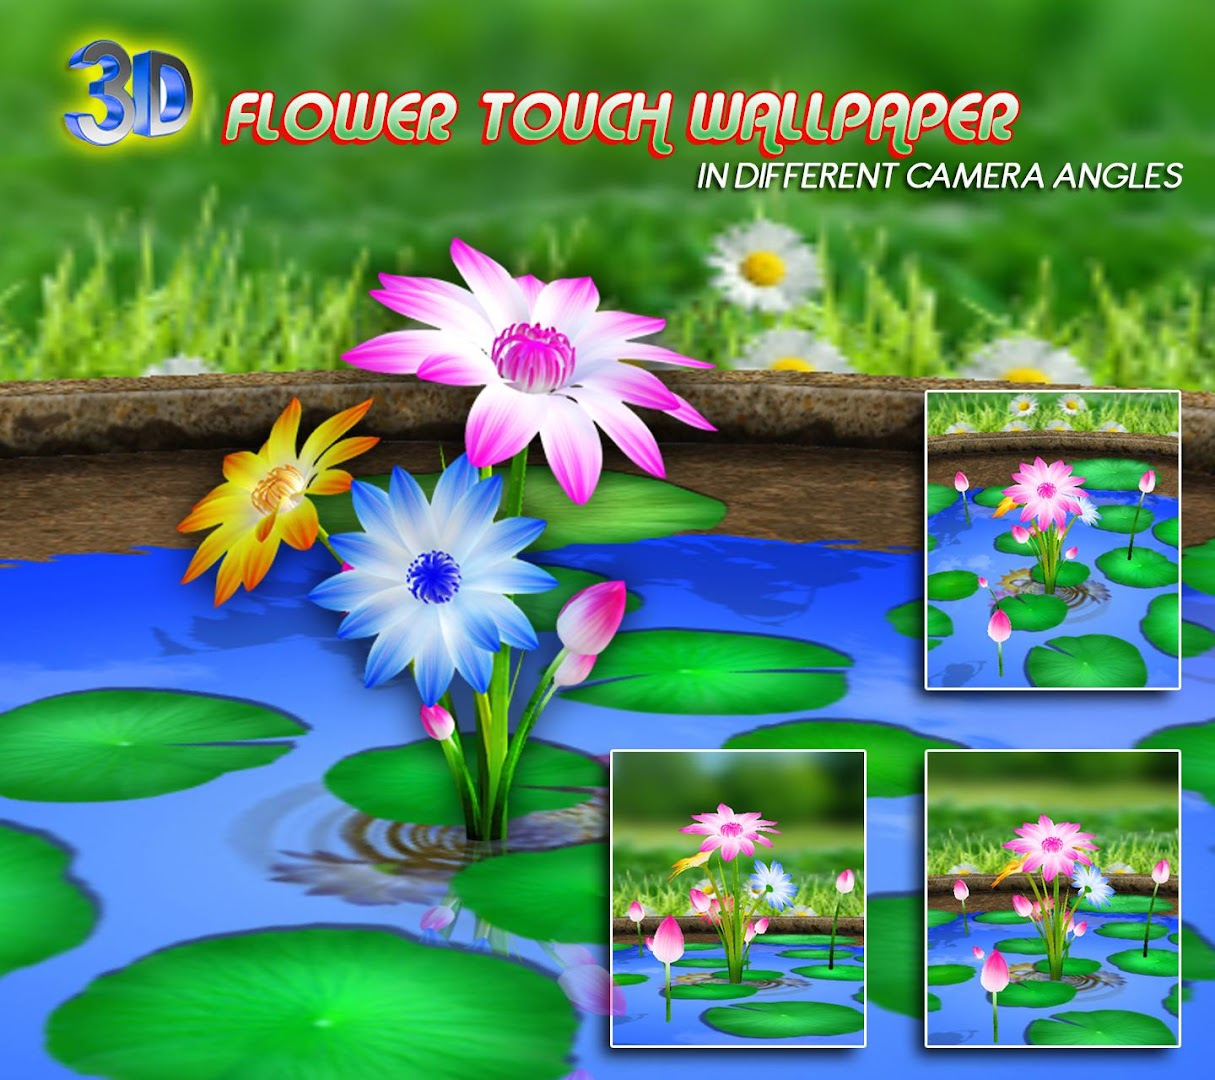 Wallpaper download app - 3d Flowers Touch Wallpaper Google Play Store Revenue Download Estimates Italy